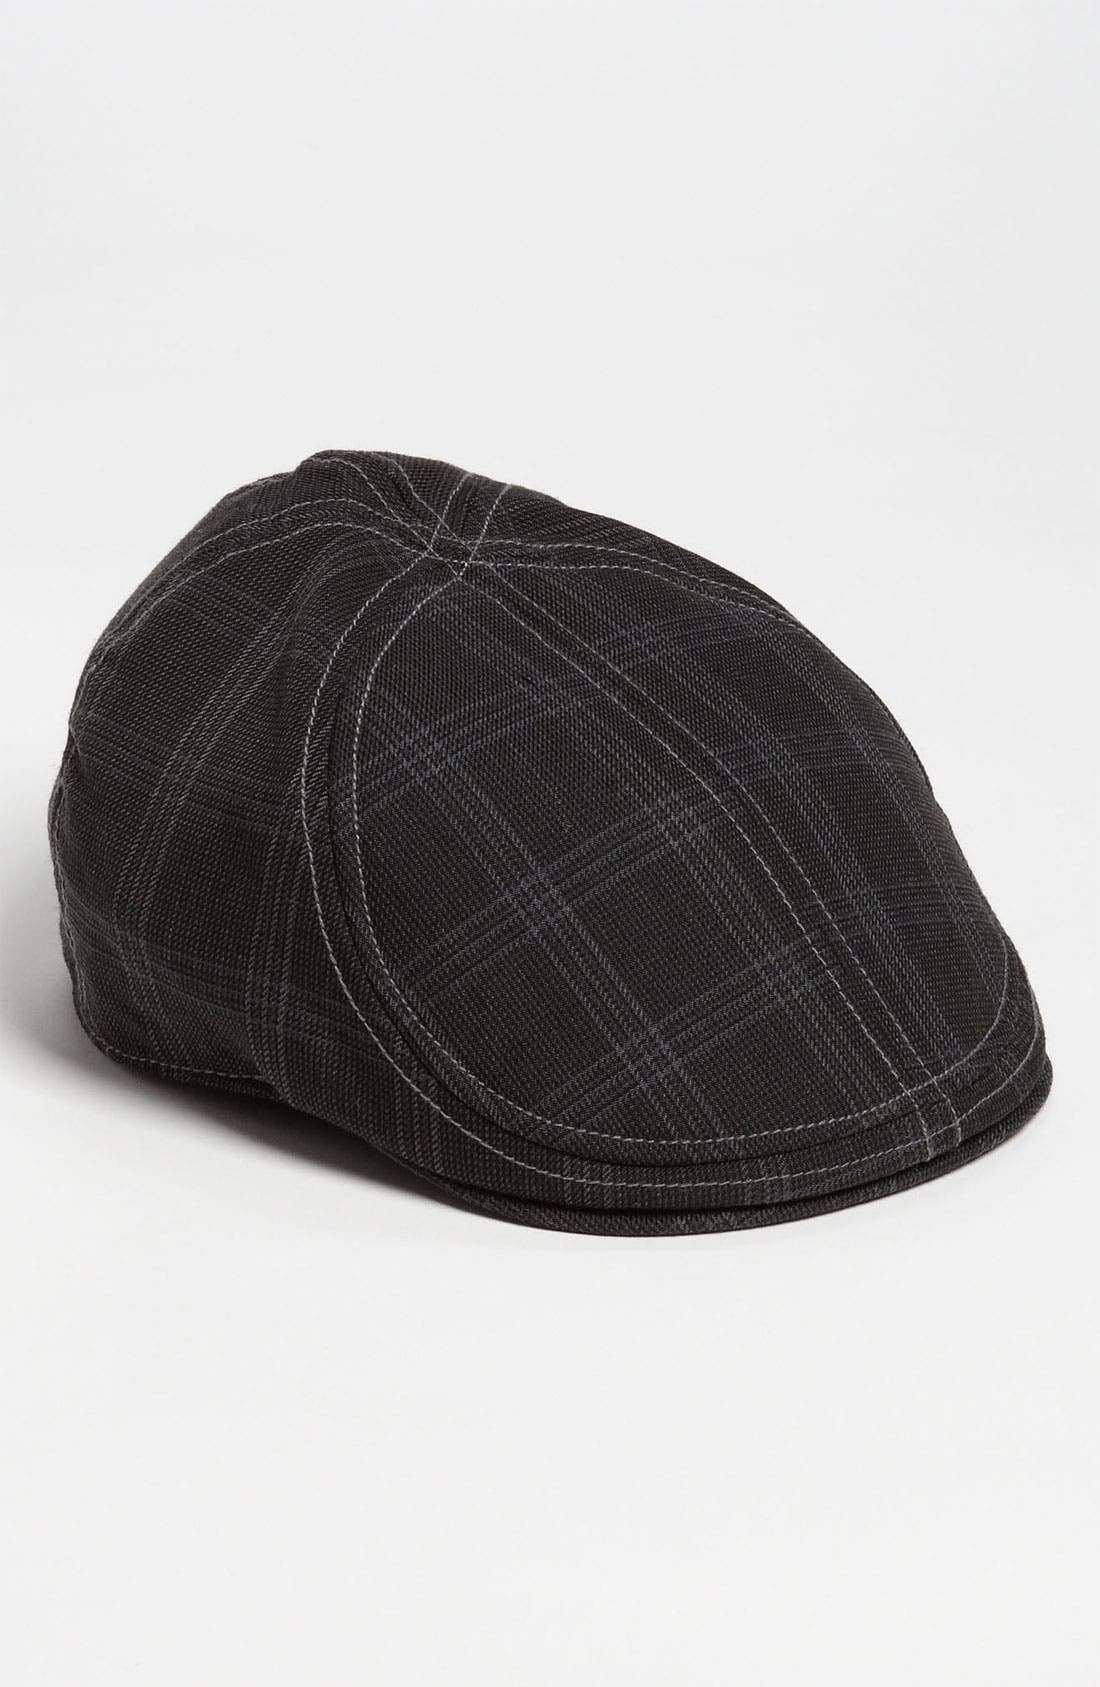 Main Image - Goorin Brothers 'Headlands Ivy' Driving Cap